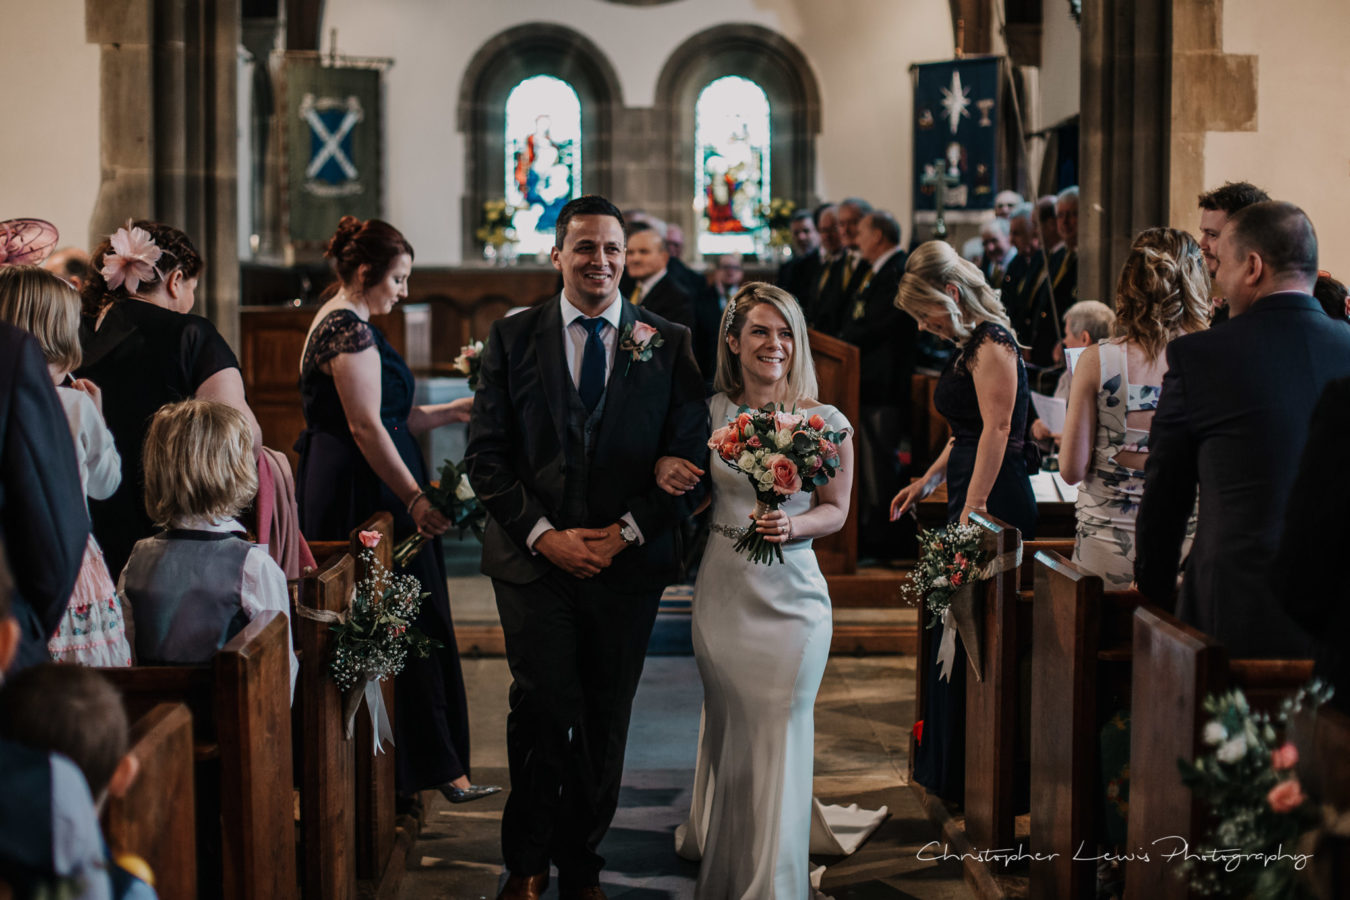 Thief-Hall-Wedding-Christopher-Lewis-Photography-33